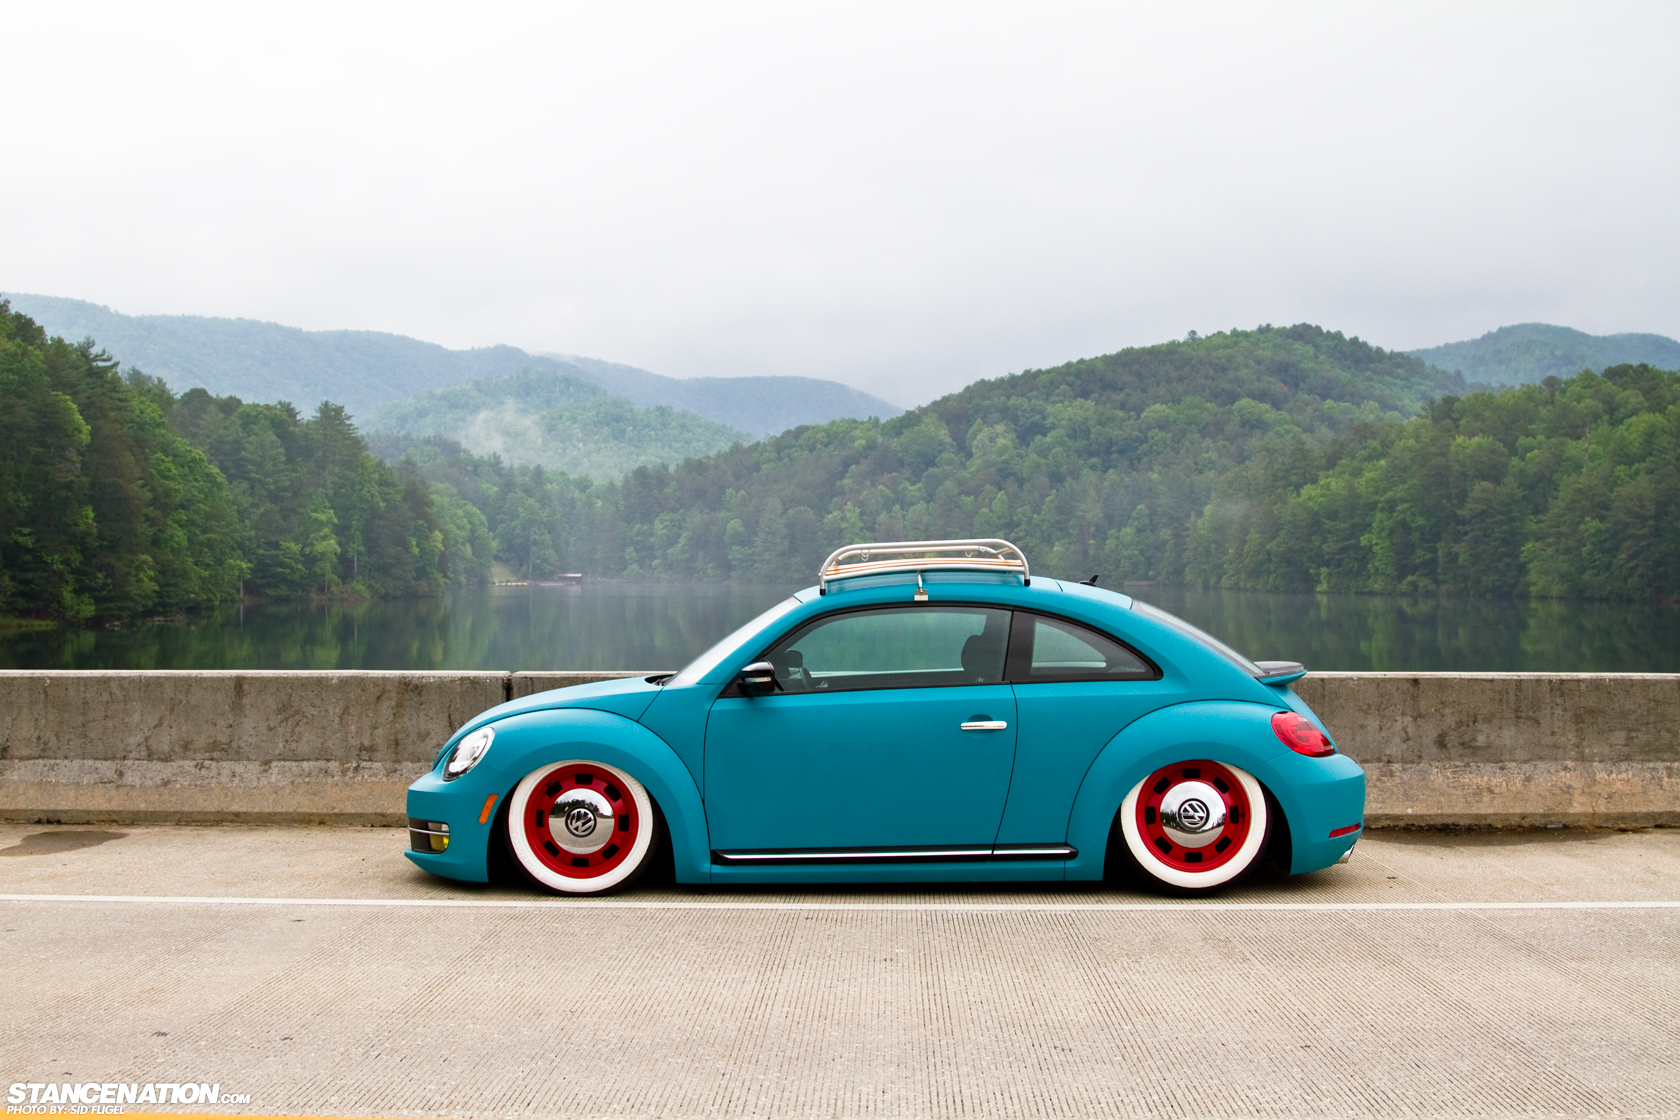 Vw new beetle tuning pictures and photos - Being The First To Do Something Is One Way To Guarantee To Stand Out And The Cardy S Did Just That Their New Beetle Was Purchased On New Years Eve Of 2012